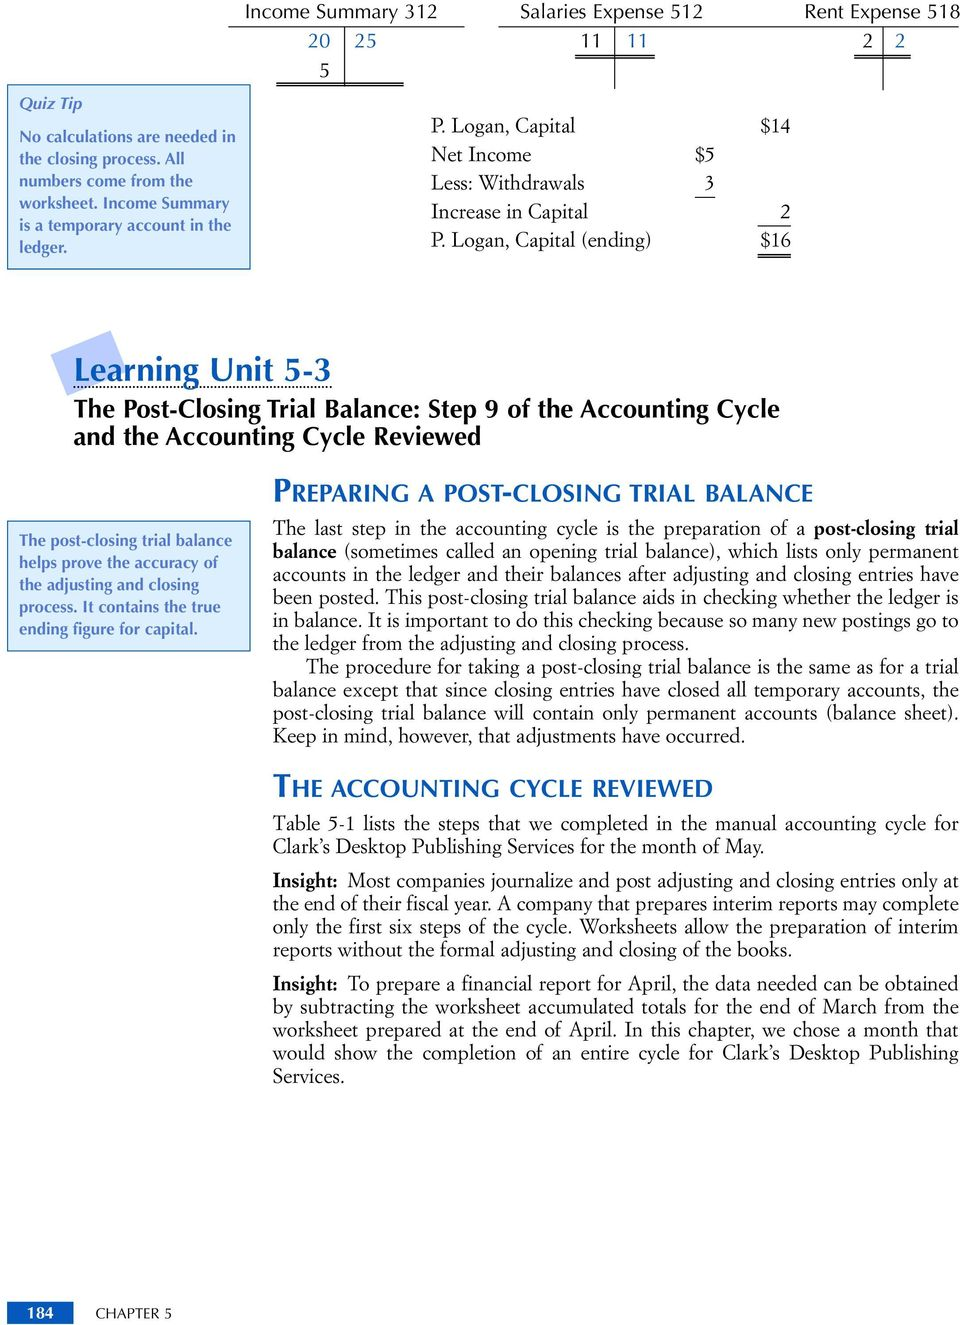 a post closing trial balance contains